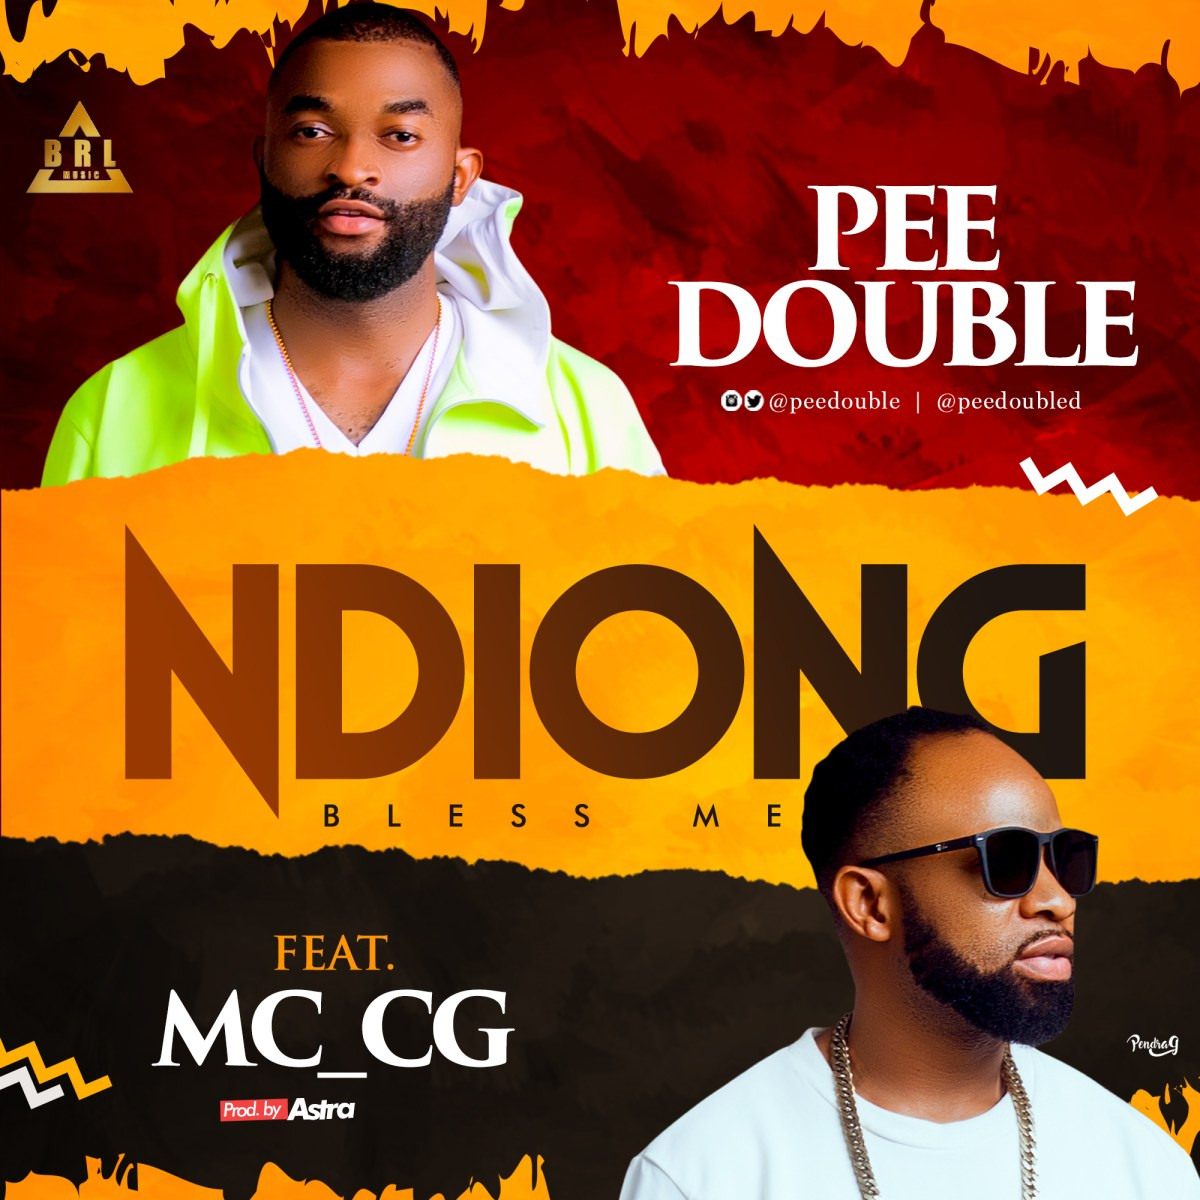 Music: Pee Double - Ndiong (Bless Me) ft MC GC // @peedoubled